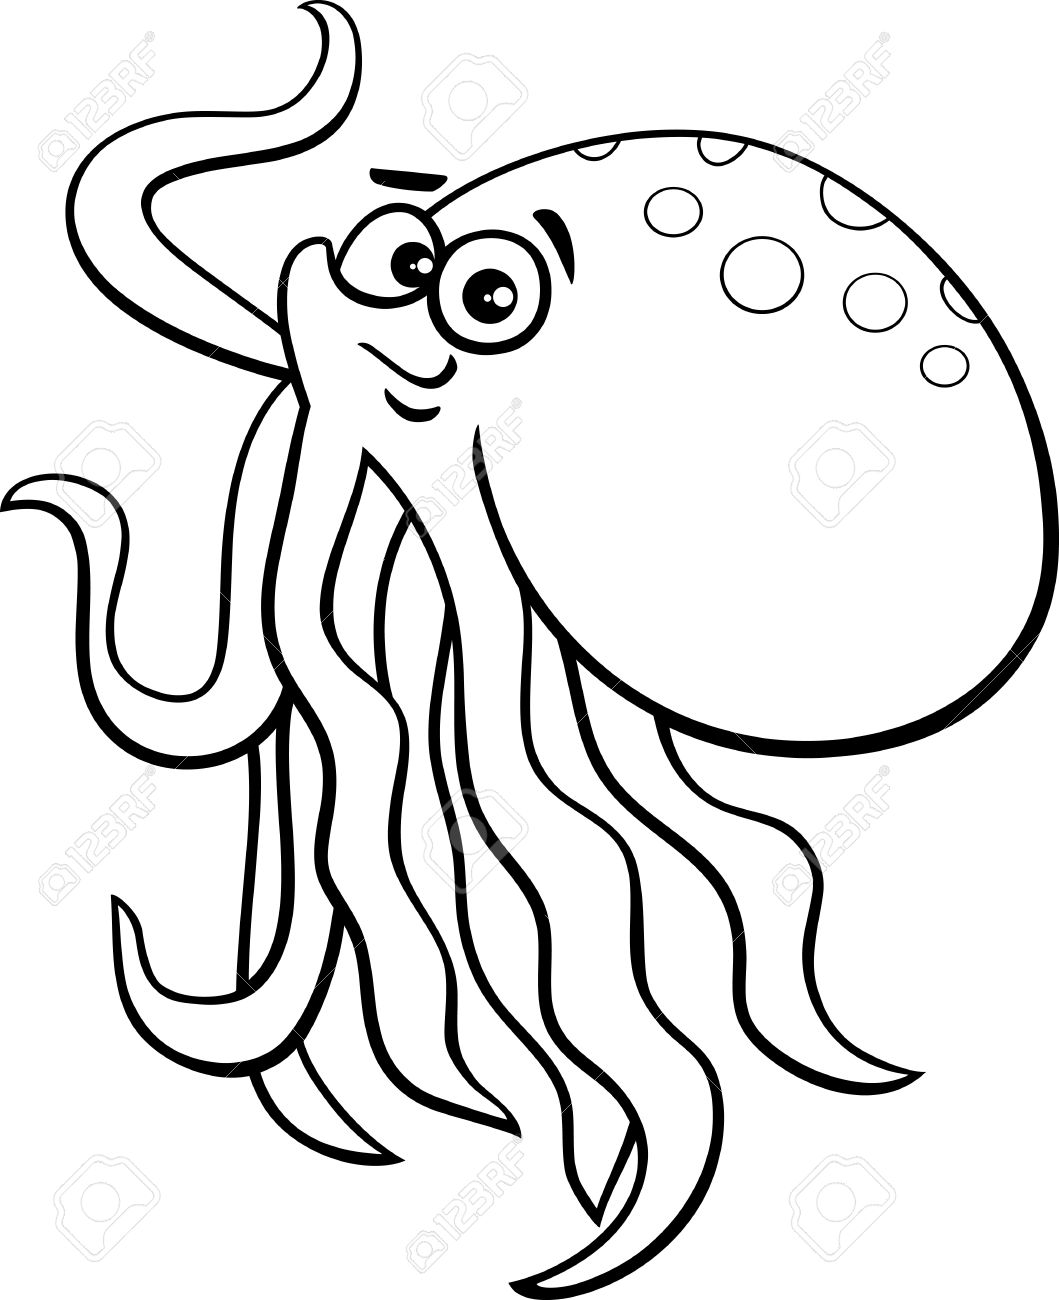 1059x1300 Cute Octopus Clipart Black And White